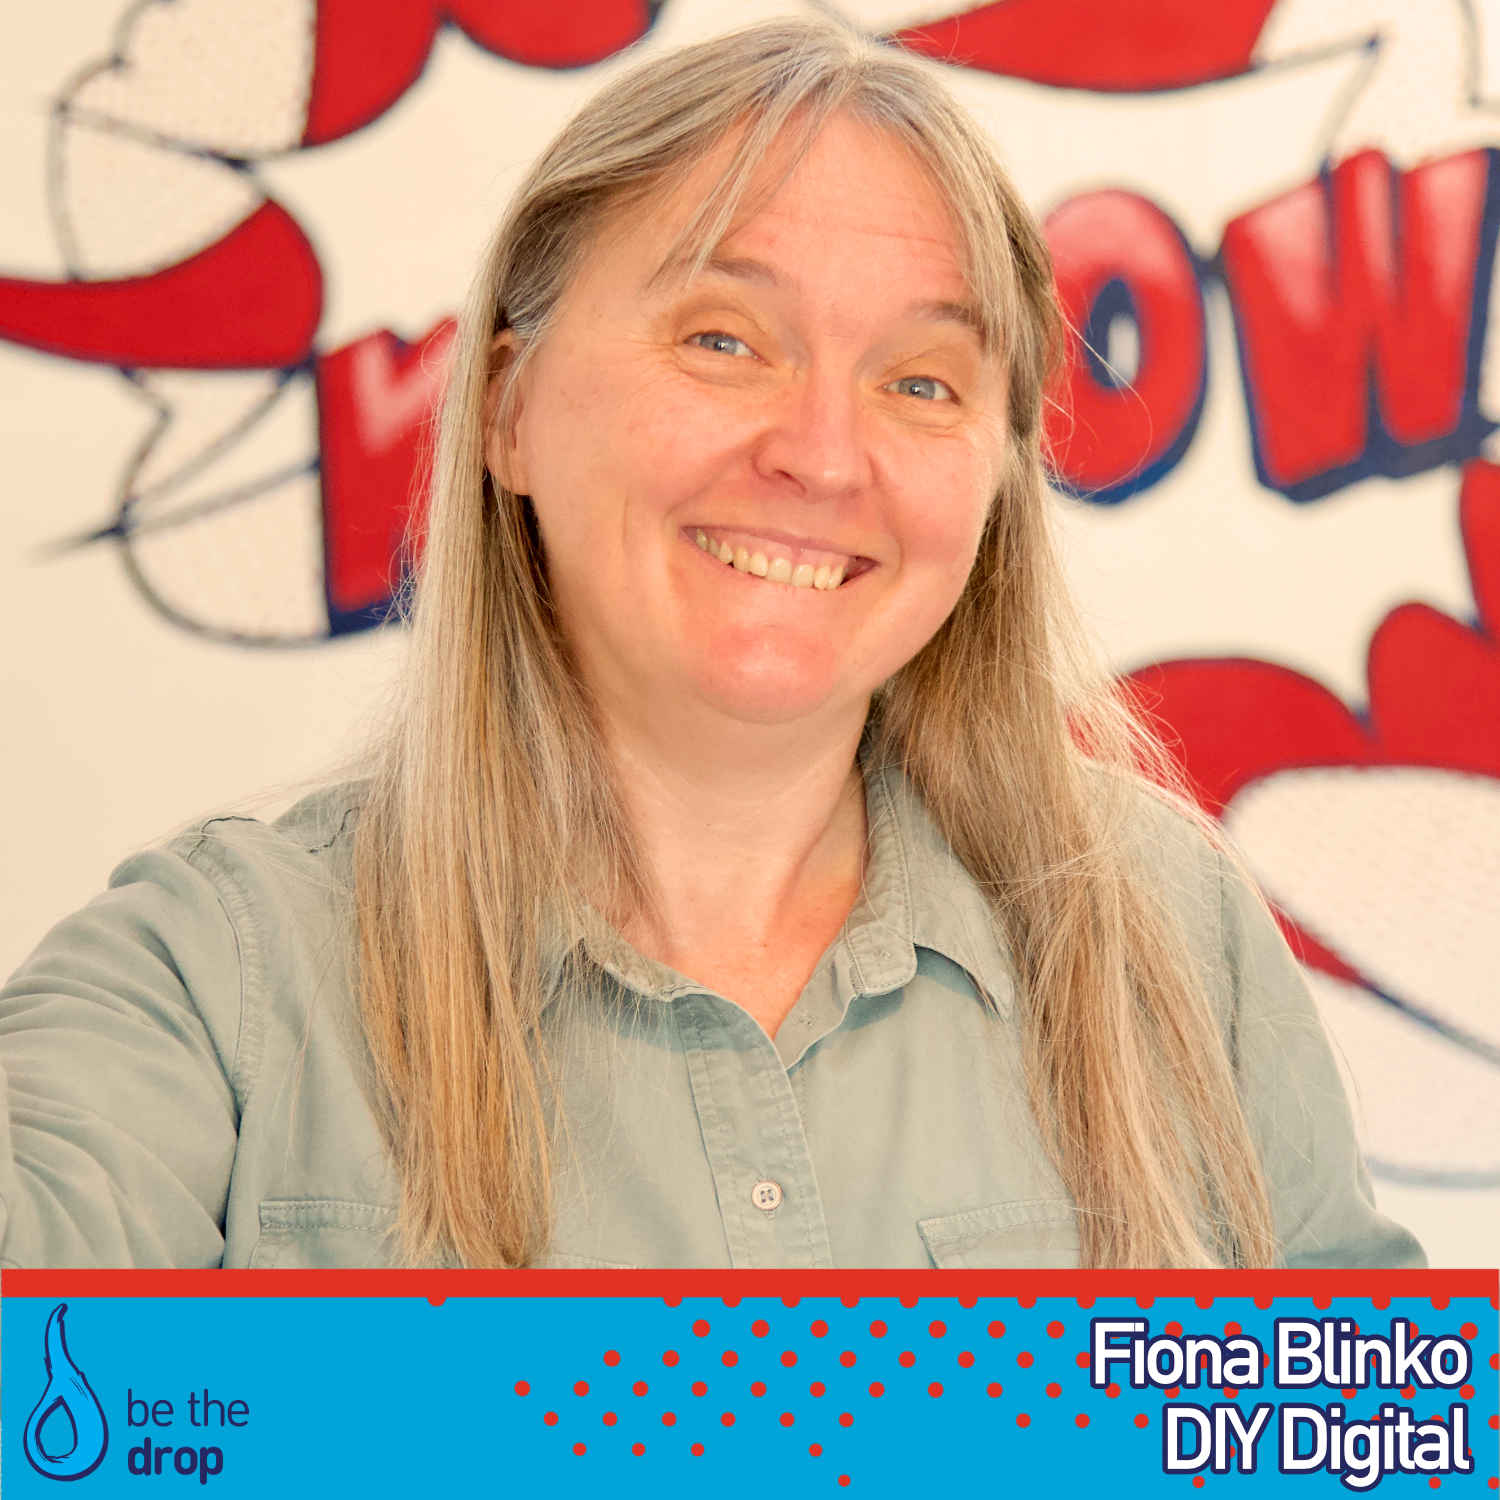 Email Marketing With Fiona From DIY Digital